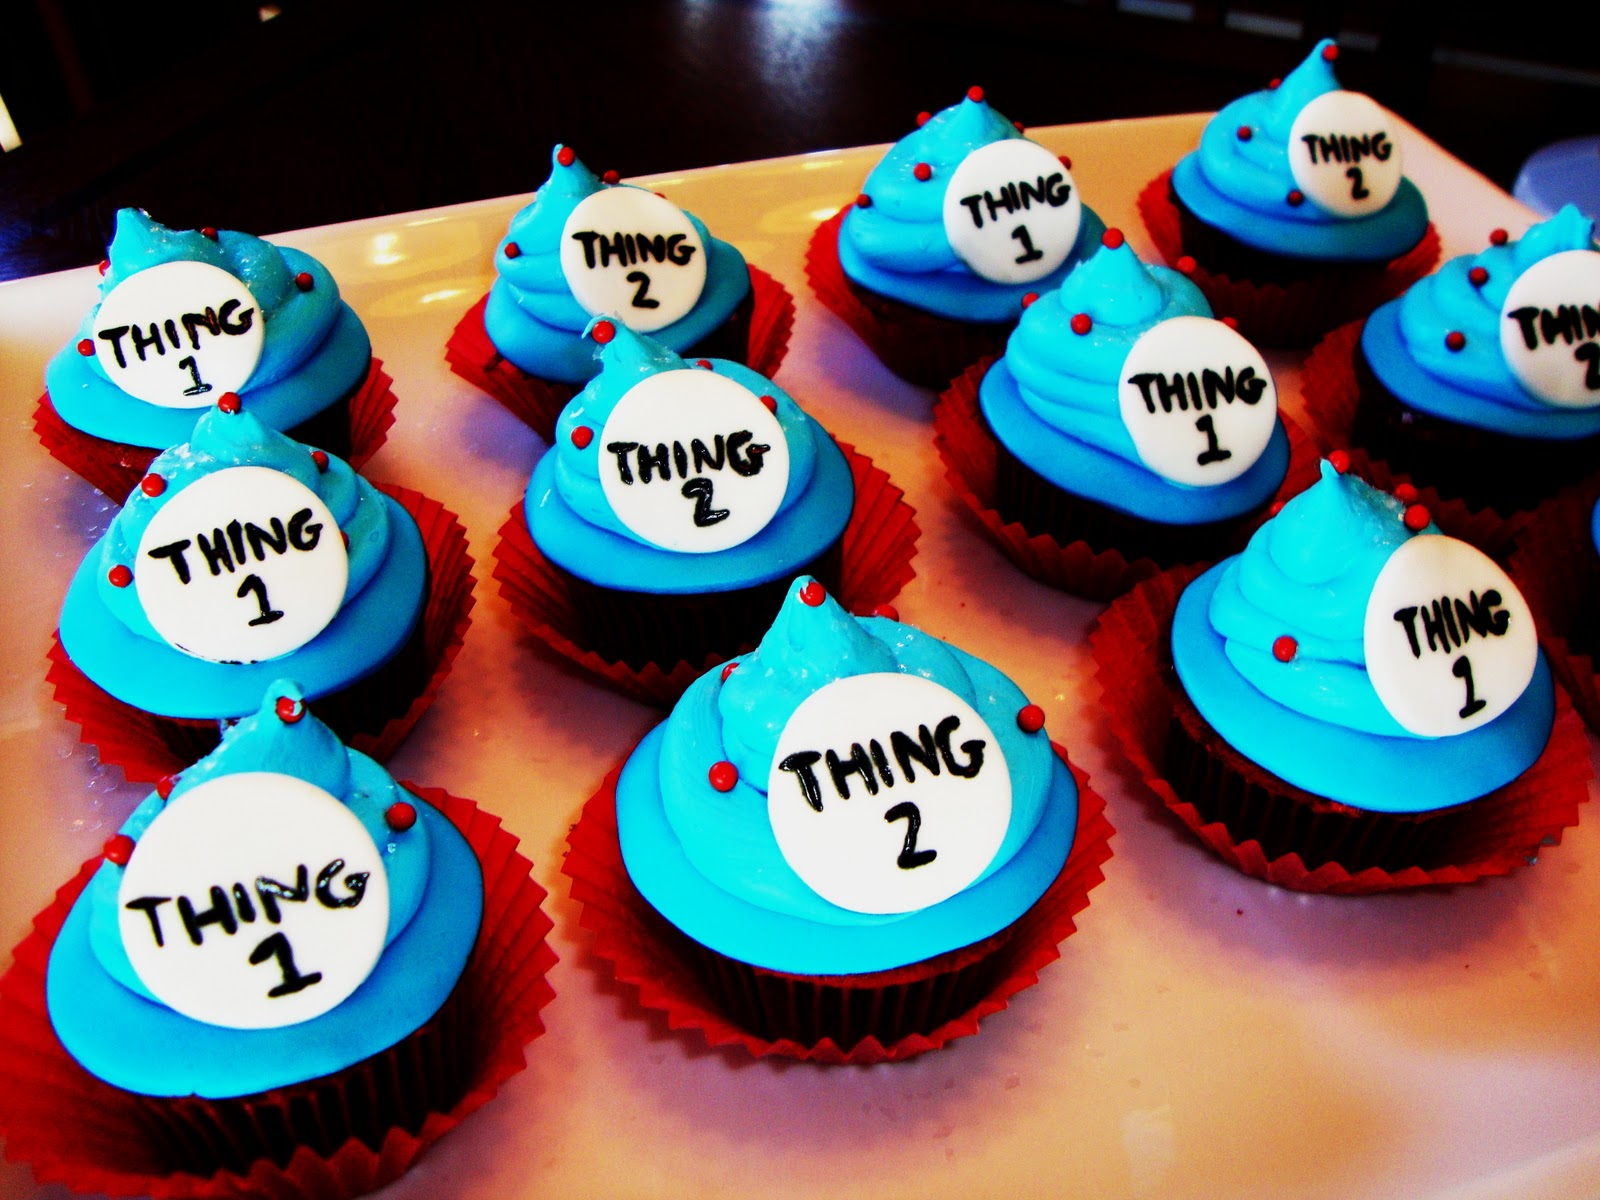 Cake Obsessions THING 1 & THING 2 HOW DO YOU DO